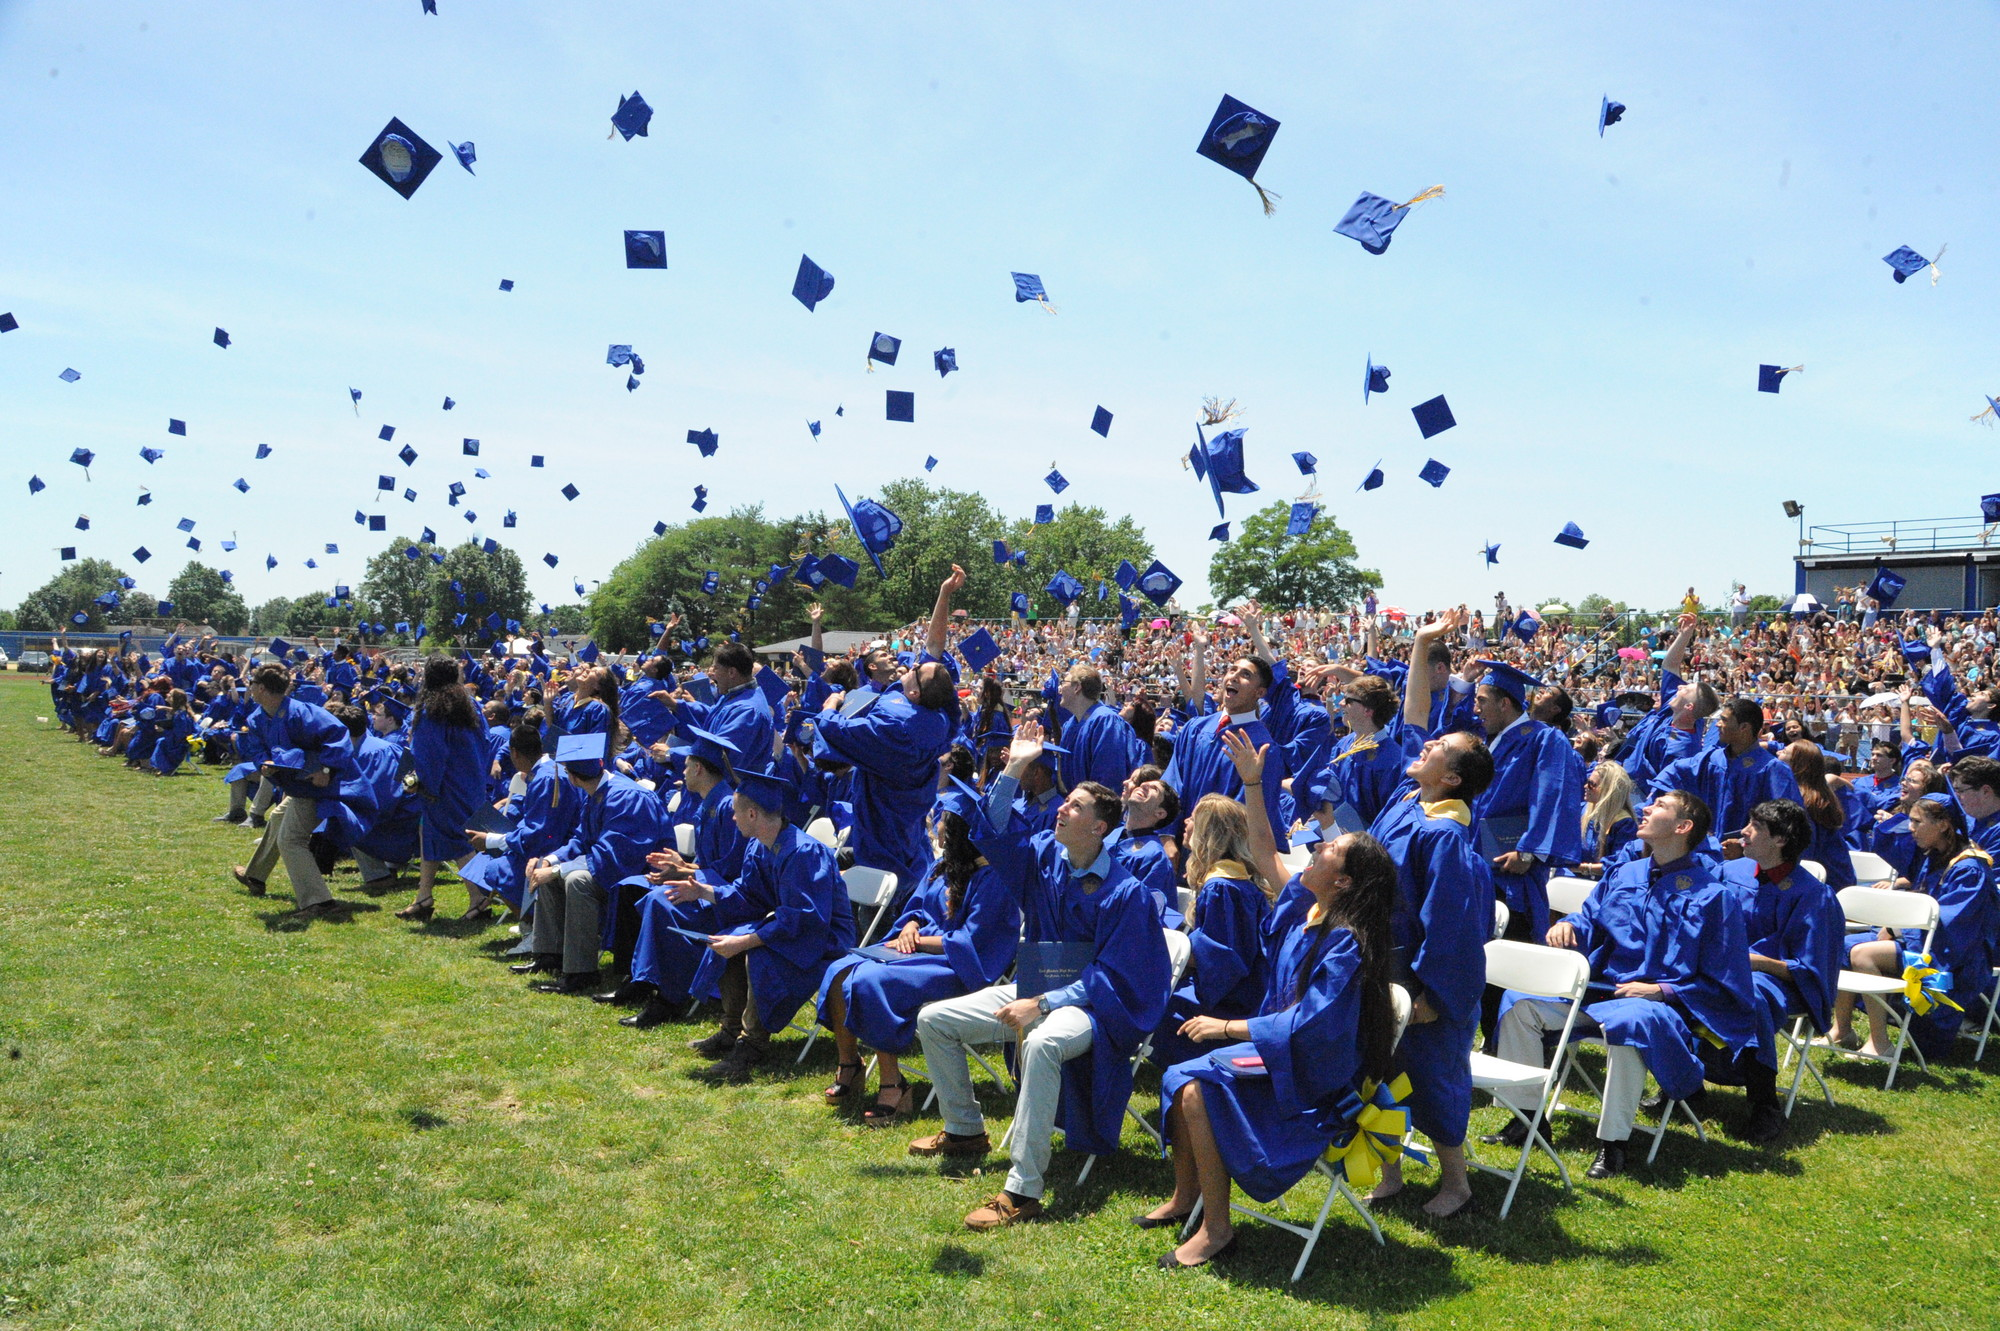 The East Meadow graduates celebrated at the end of Sunday's graduation ceremony